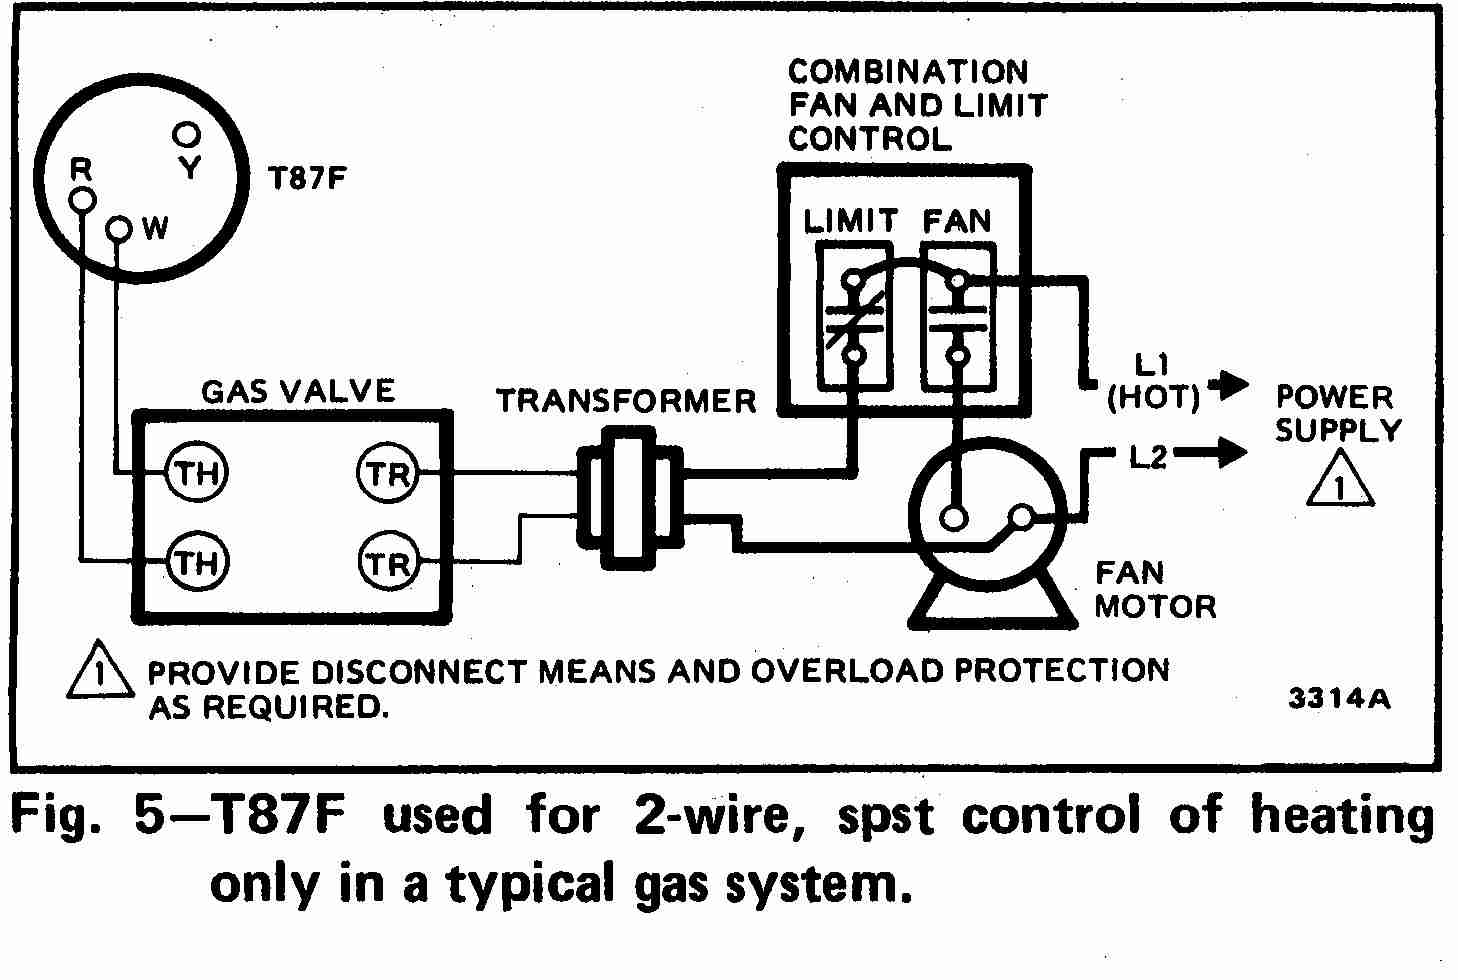 TT_T87F_0002_2Wg_DJF guide to wiring connections for room thermostats air conditioner thermostat wiring diagram at gsmportal.co